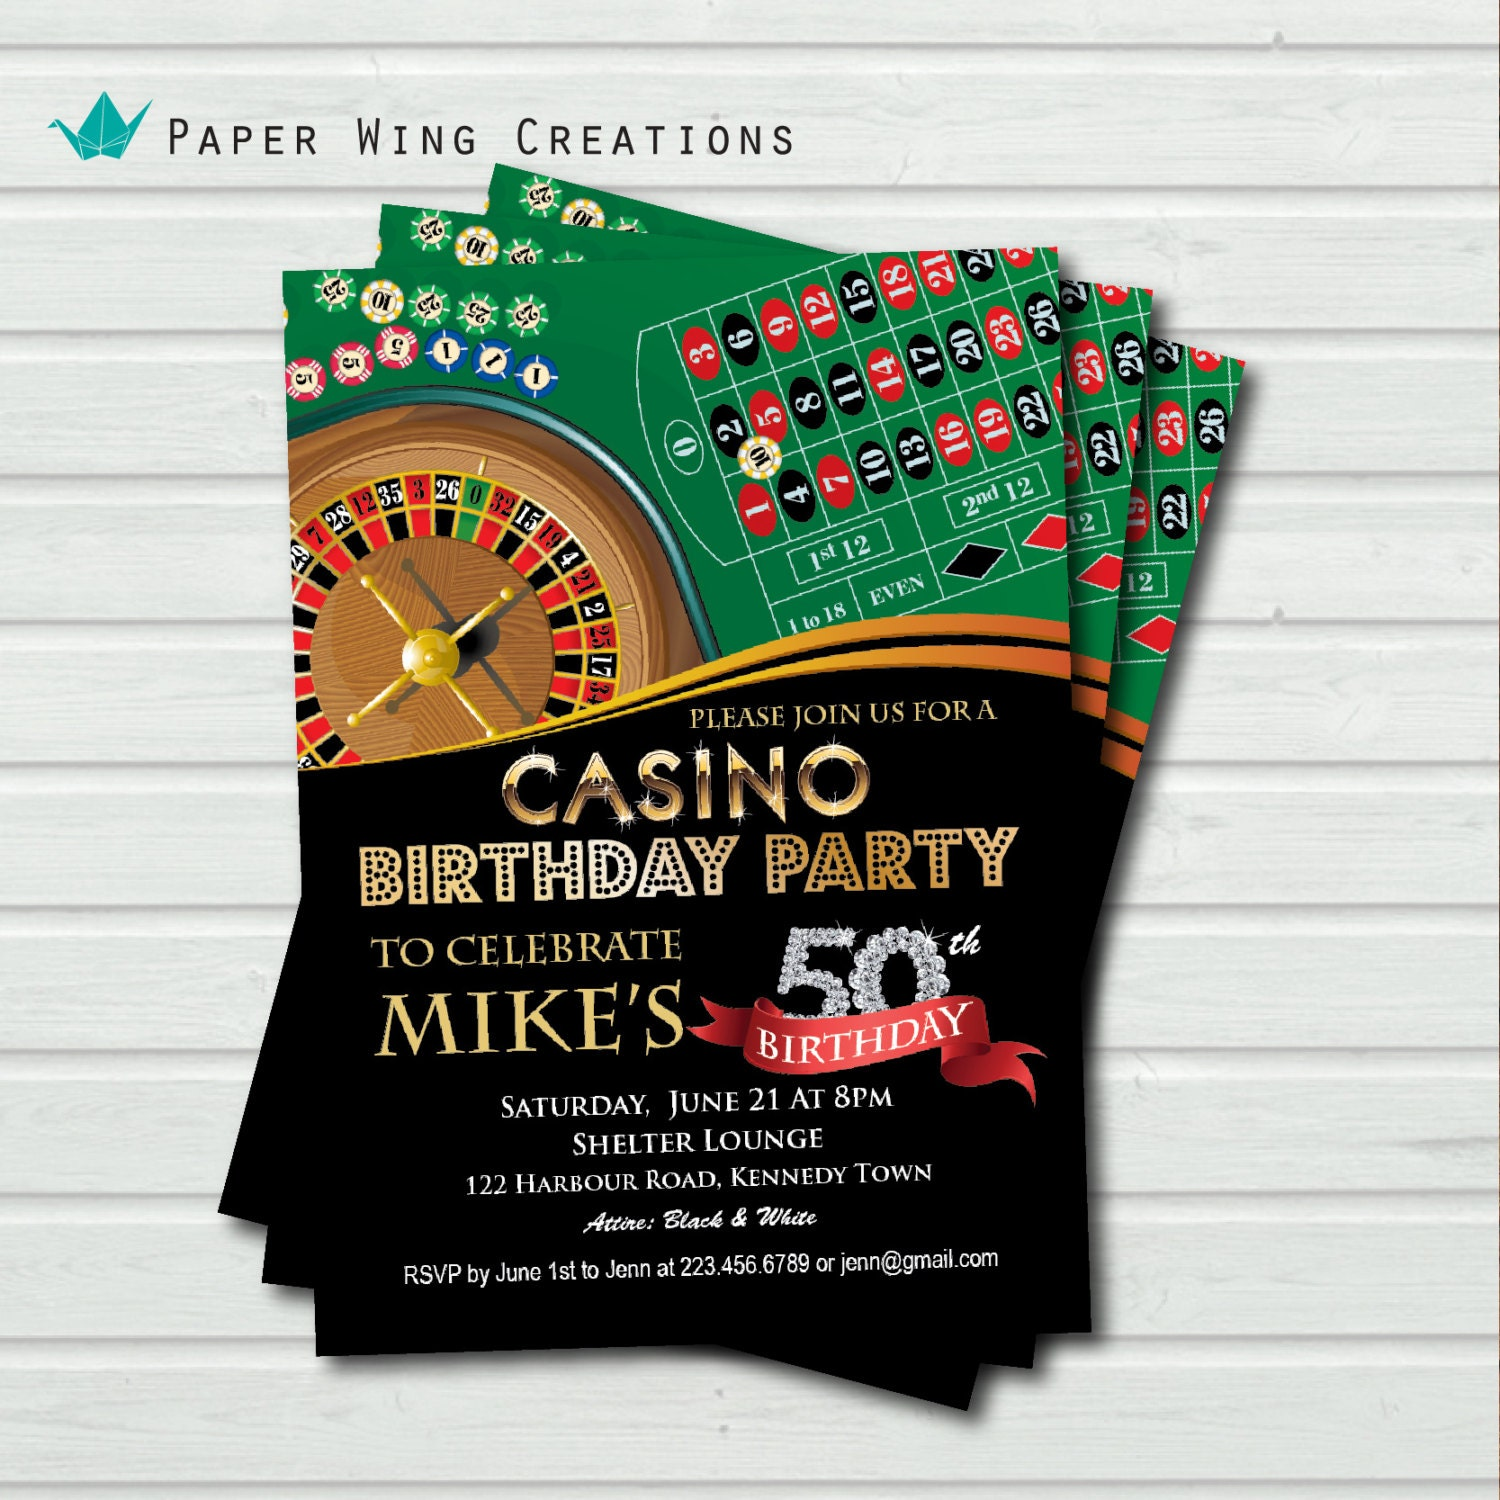 Casino birthday invitations barrona valley casino